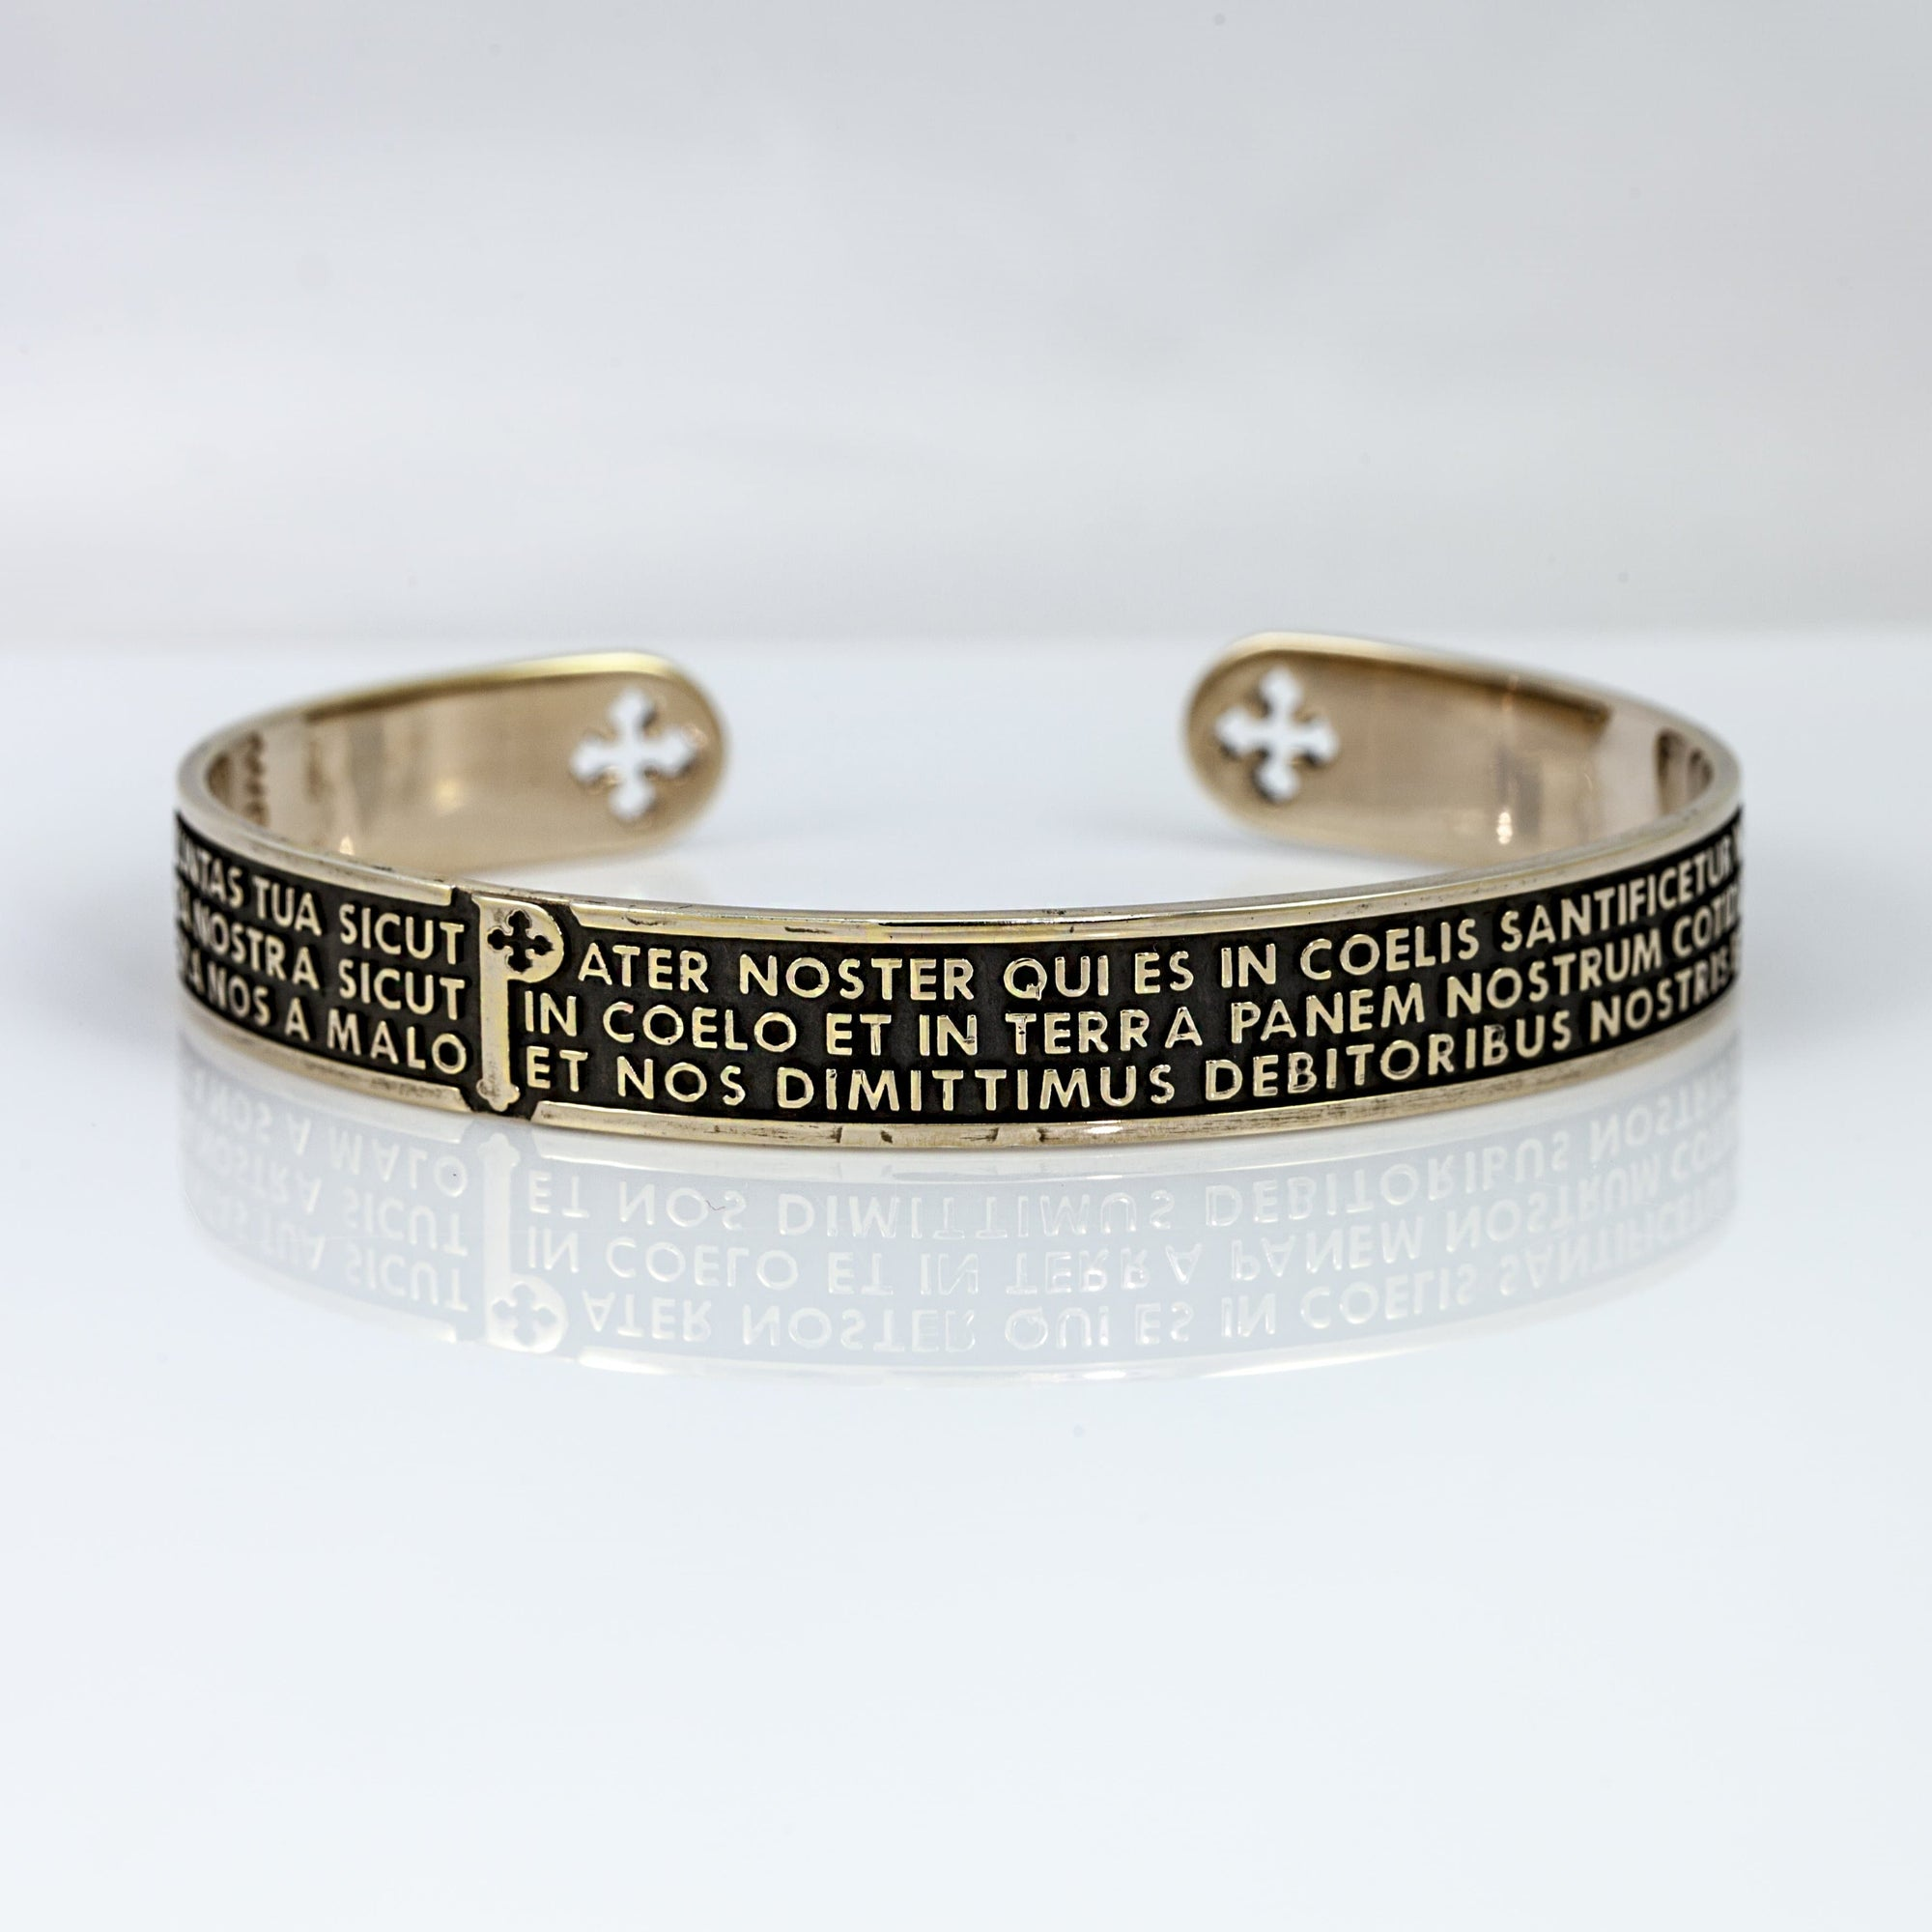 Tuum Origine Bronzed Sterling Silver Cuff Bracelet With 'Our Father' Prayer in Latin, Medium